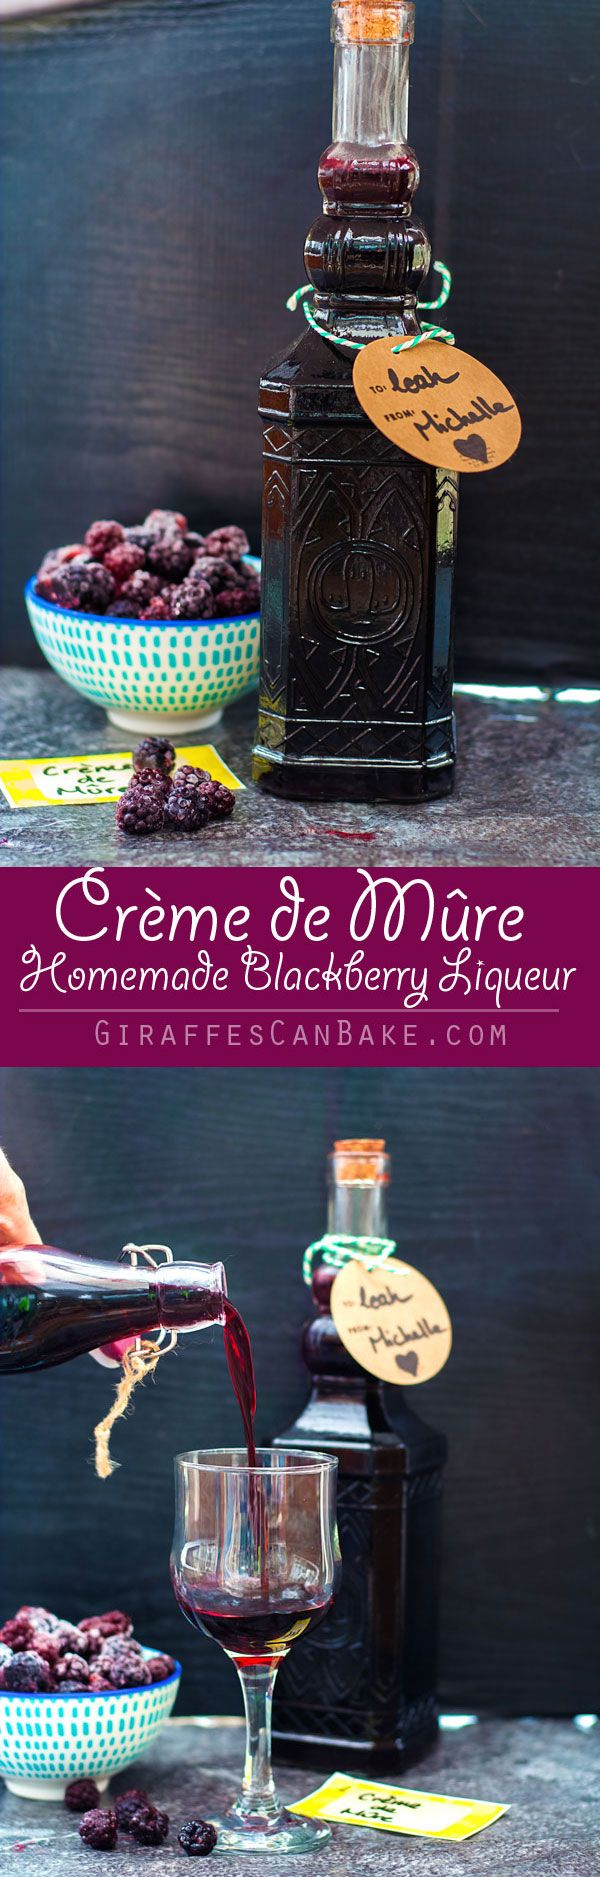 A sweet and fruity homemade Blackberry Liqueur (also known as Crème de Mûre) that is so easy to make yourself with very little hands on time. The perfect way to use up all the blackberries the season has to offer! This easy homemade Blackberry Liqueur only gets better with time – so make up a big batch now to have the perfect homemade Christmas gifts on hand come December.